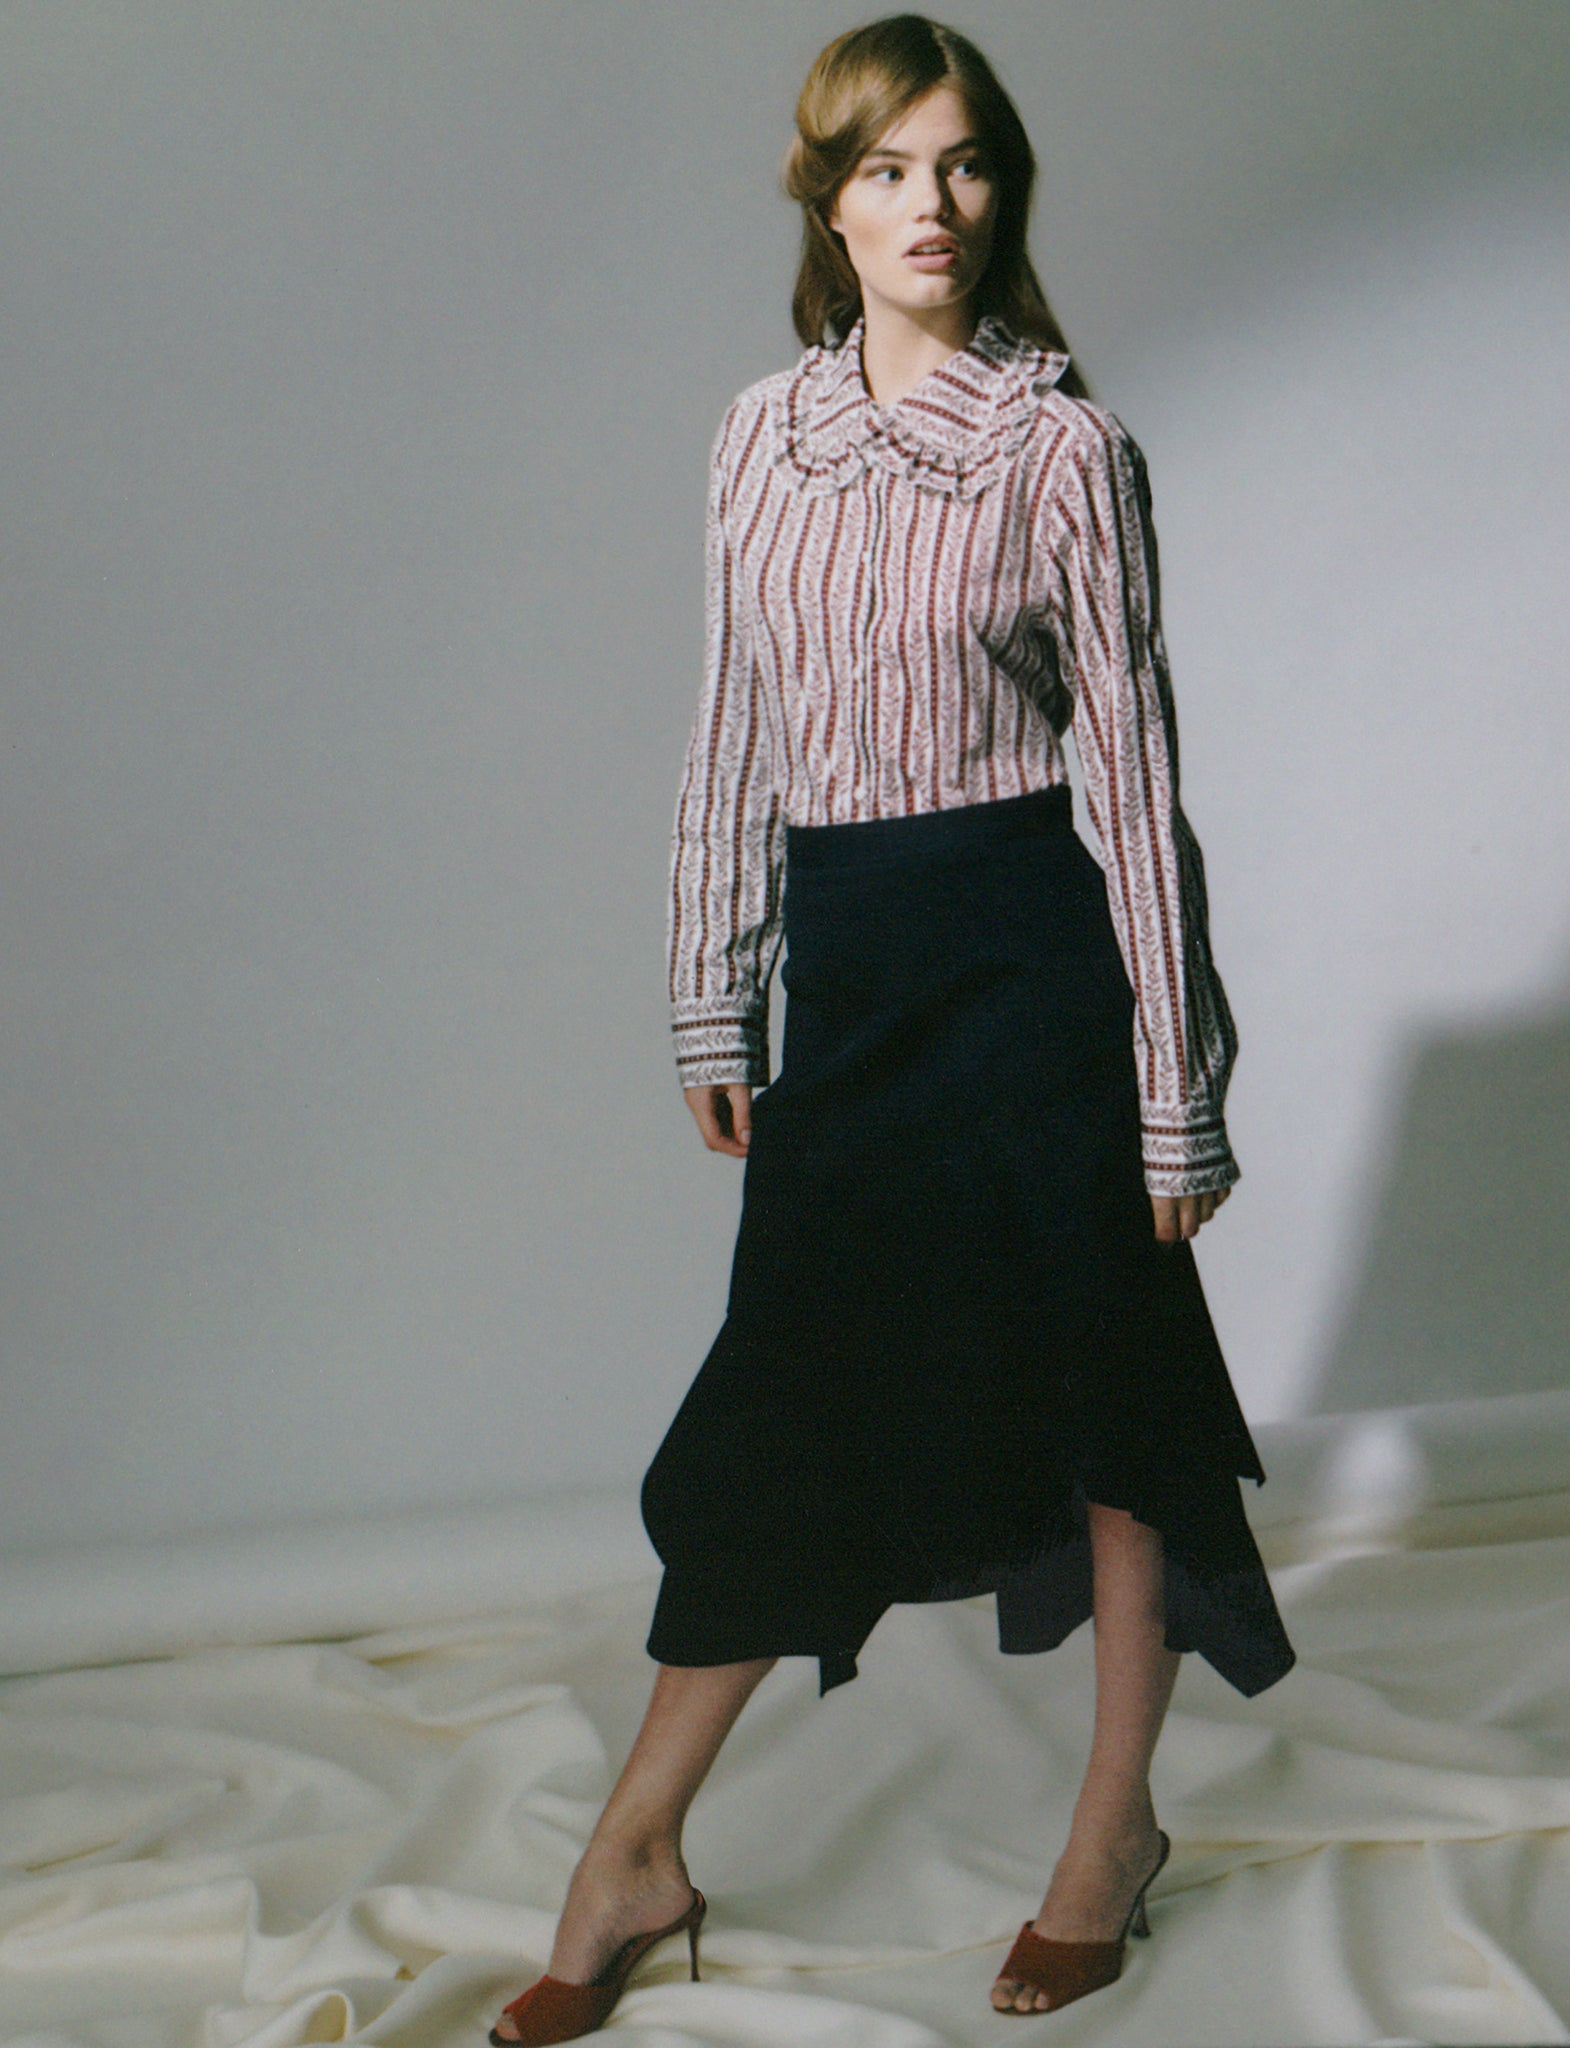 See by Chloe Large Collar Shirt, Peter Pilotto Cotton Gabardine Skirt at The Line